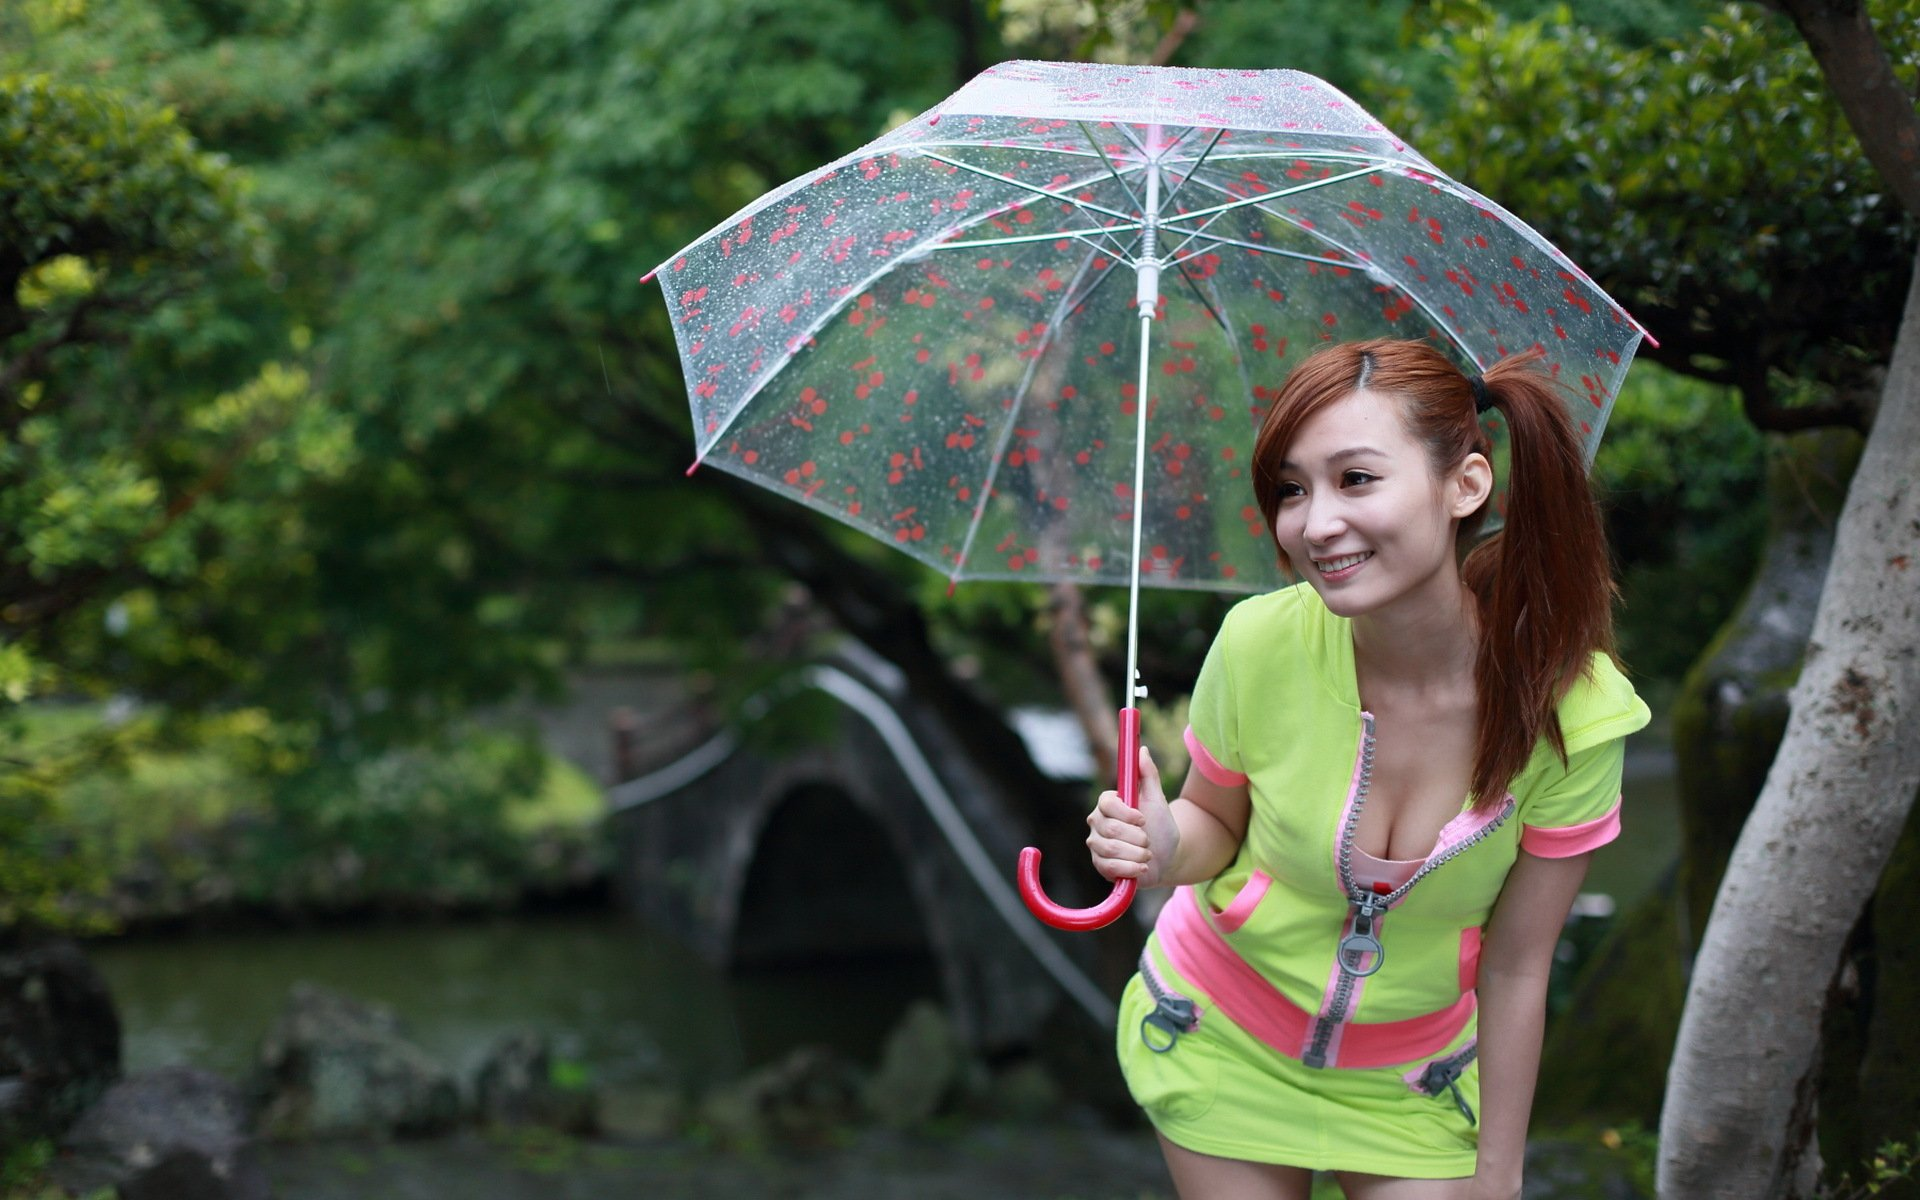 naked-asian-girl-with-umbrella-amateur-pics-of-my-exgirlfriend